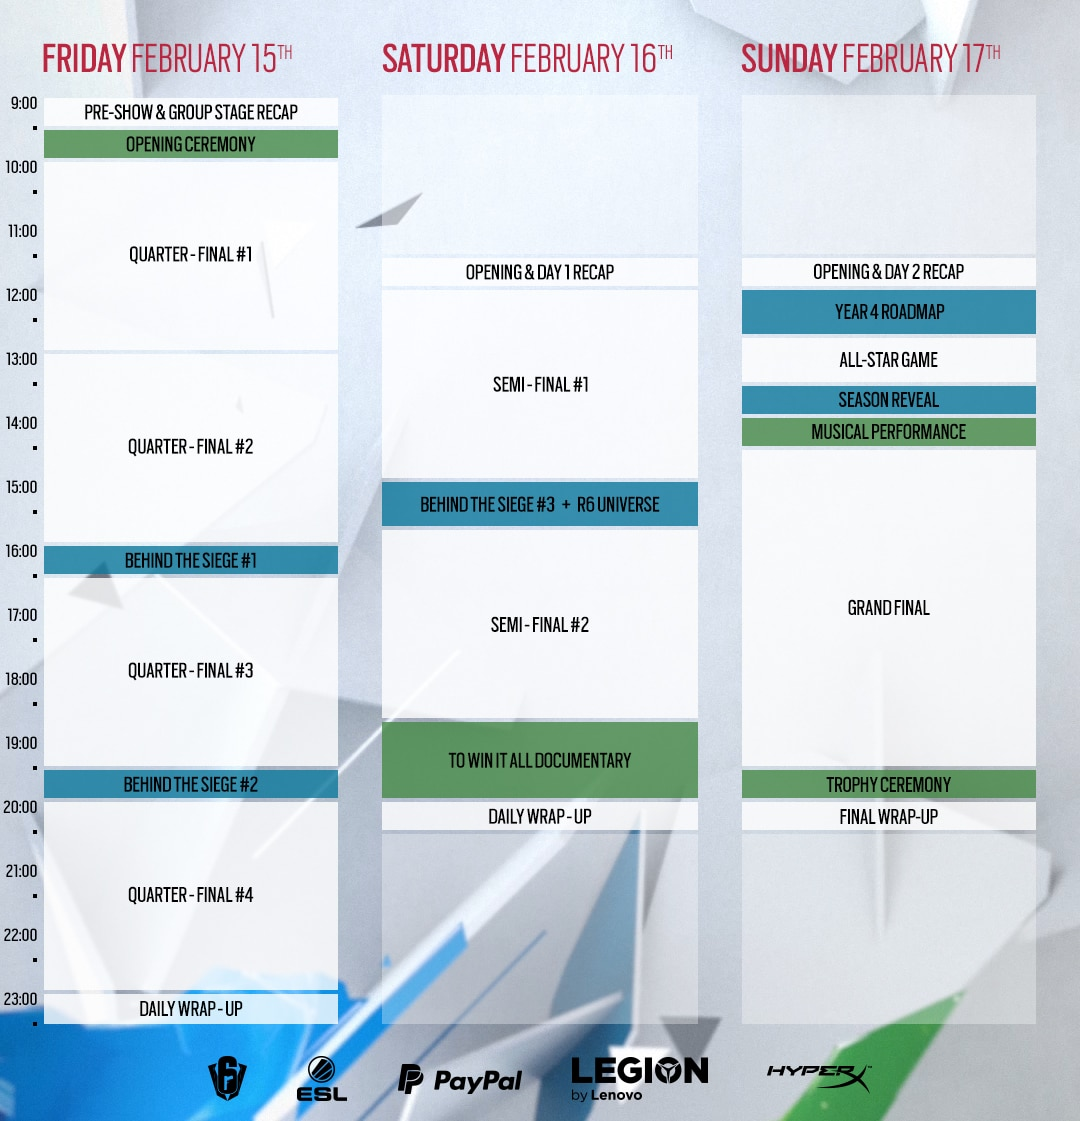 [2019-01-28] SI Weekend Schedule